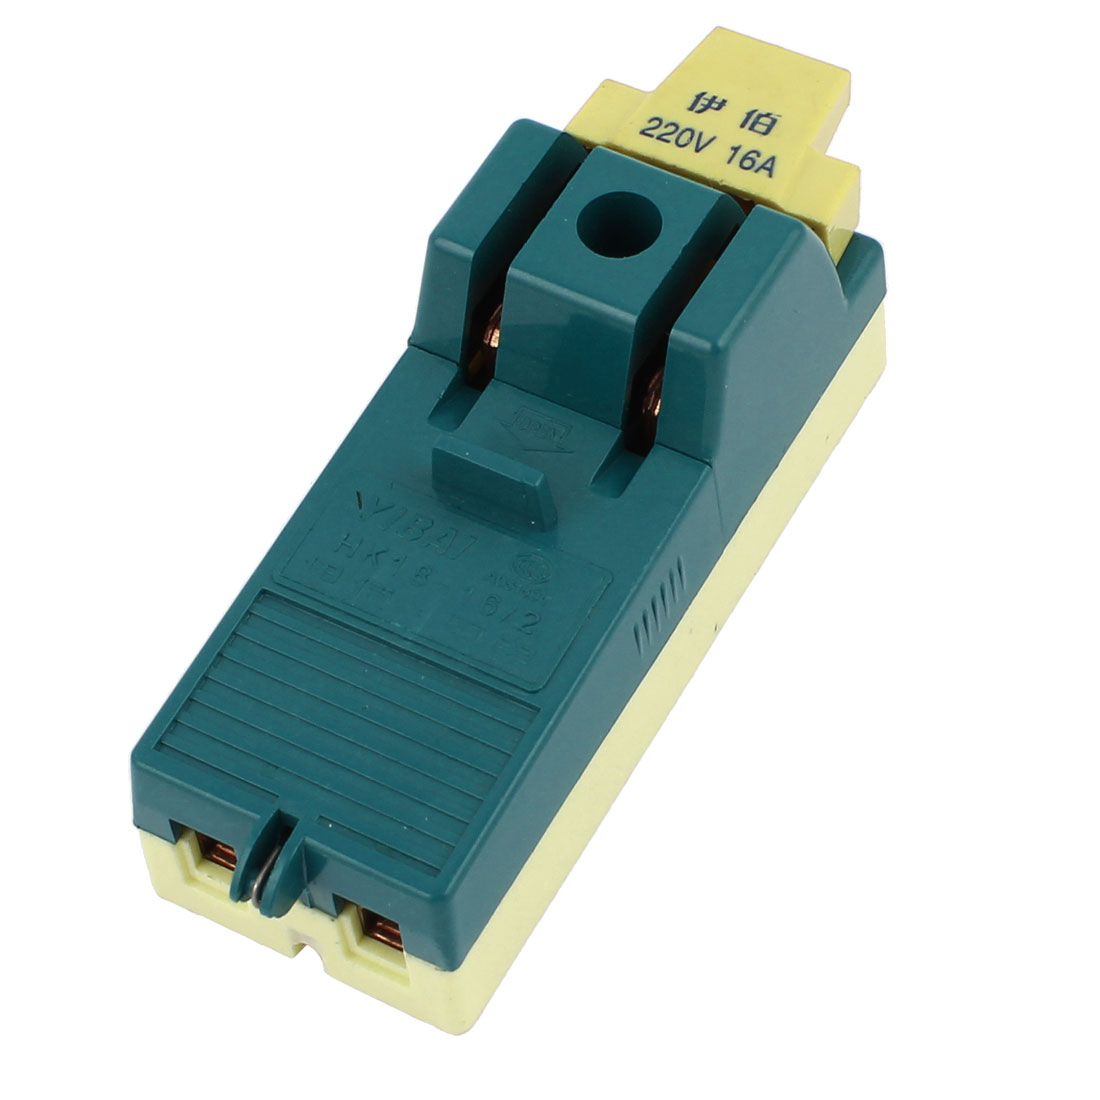 HK18-16/2 Single Phase Blade Electric Power Switch Green 220V 16A